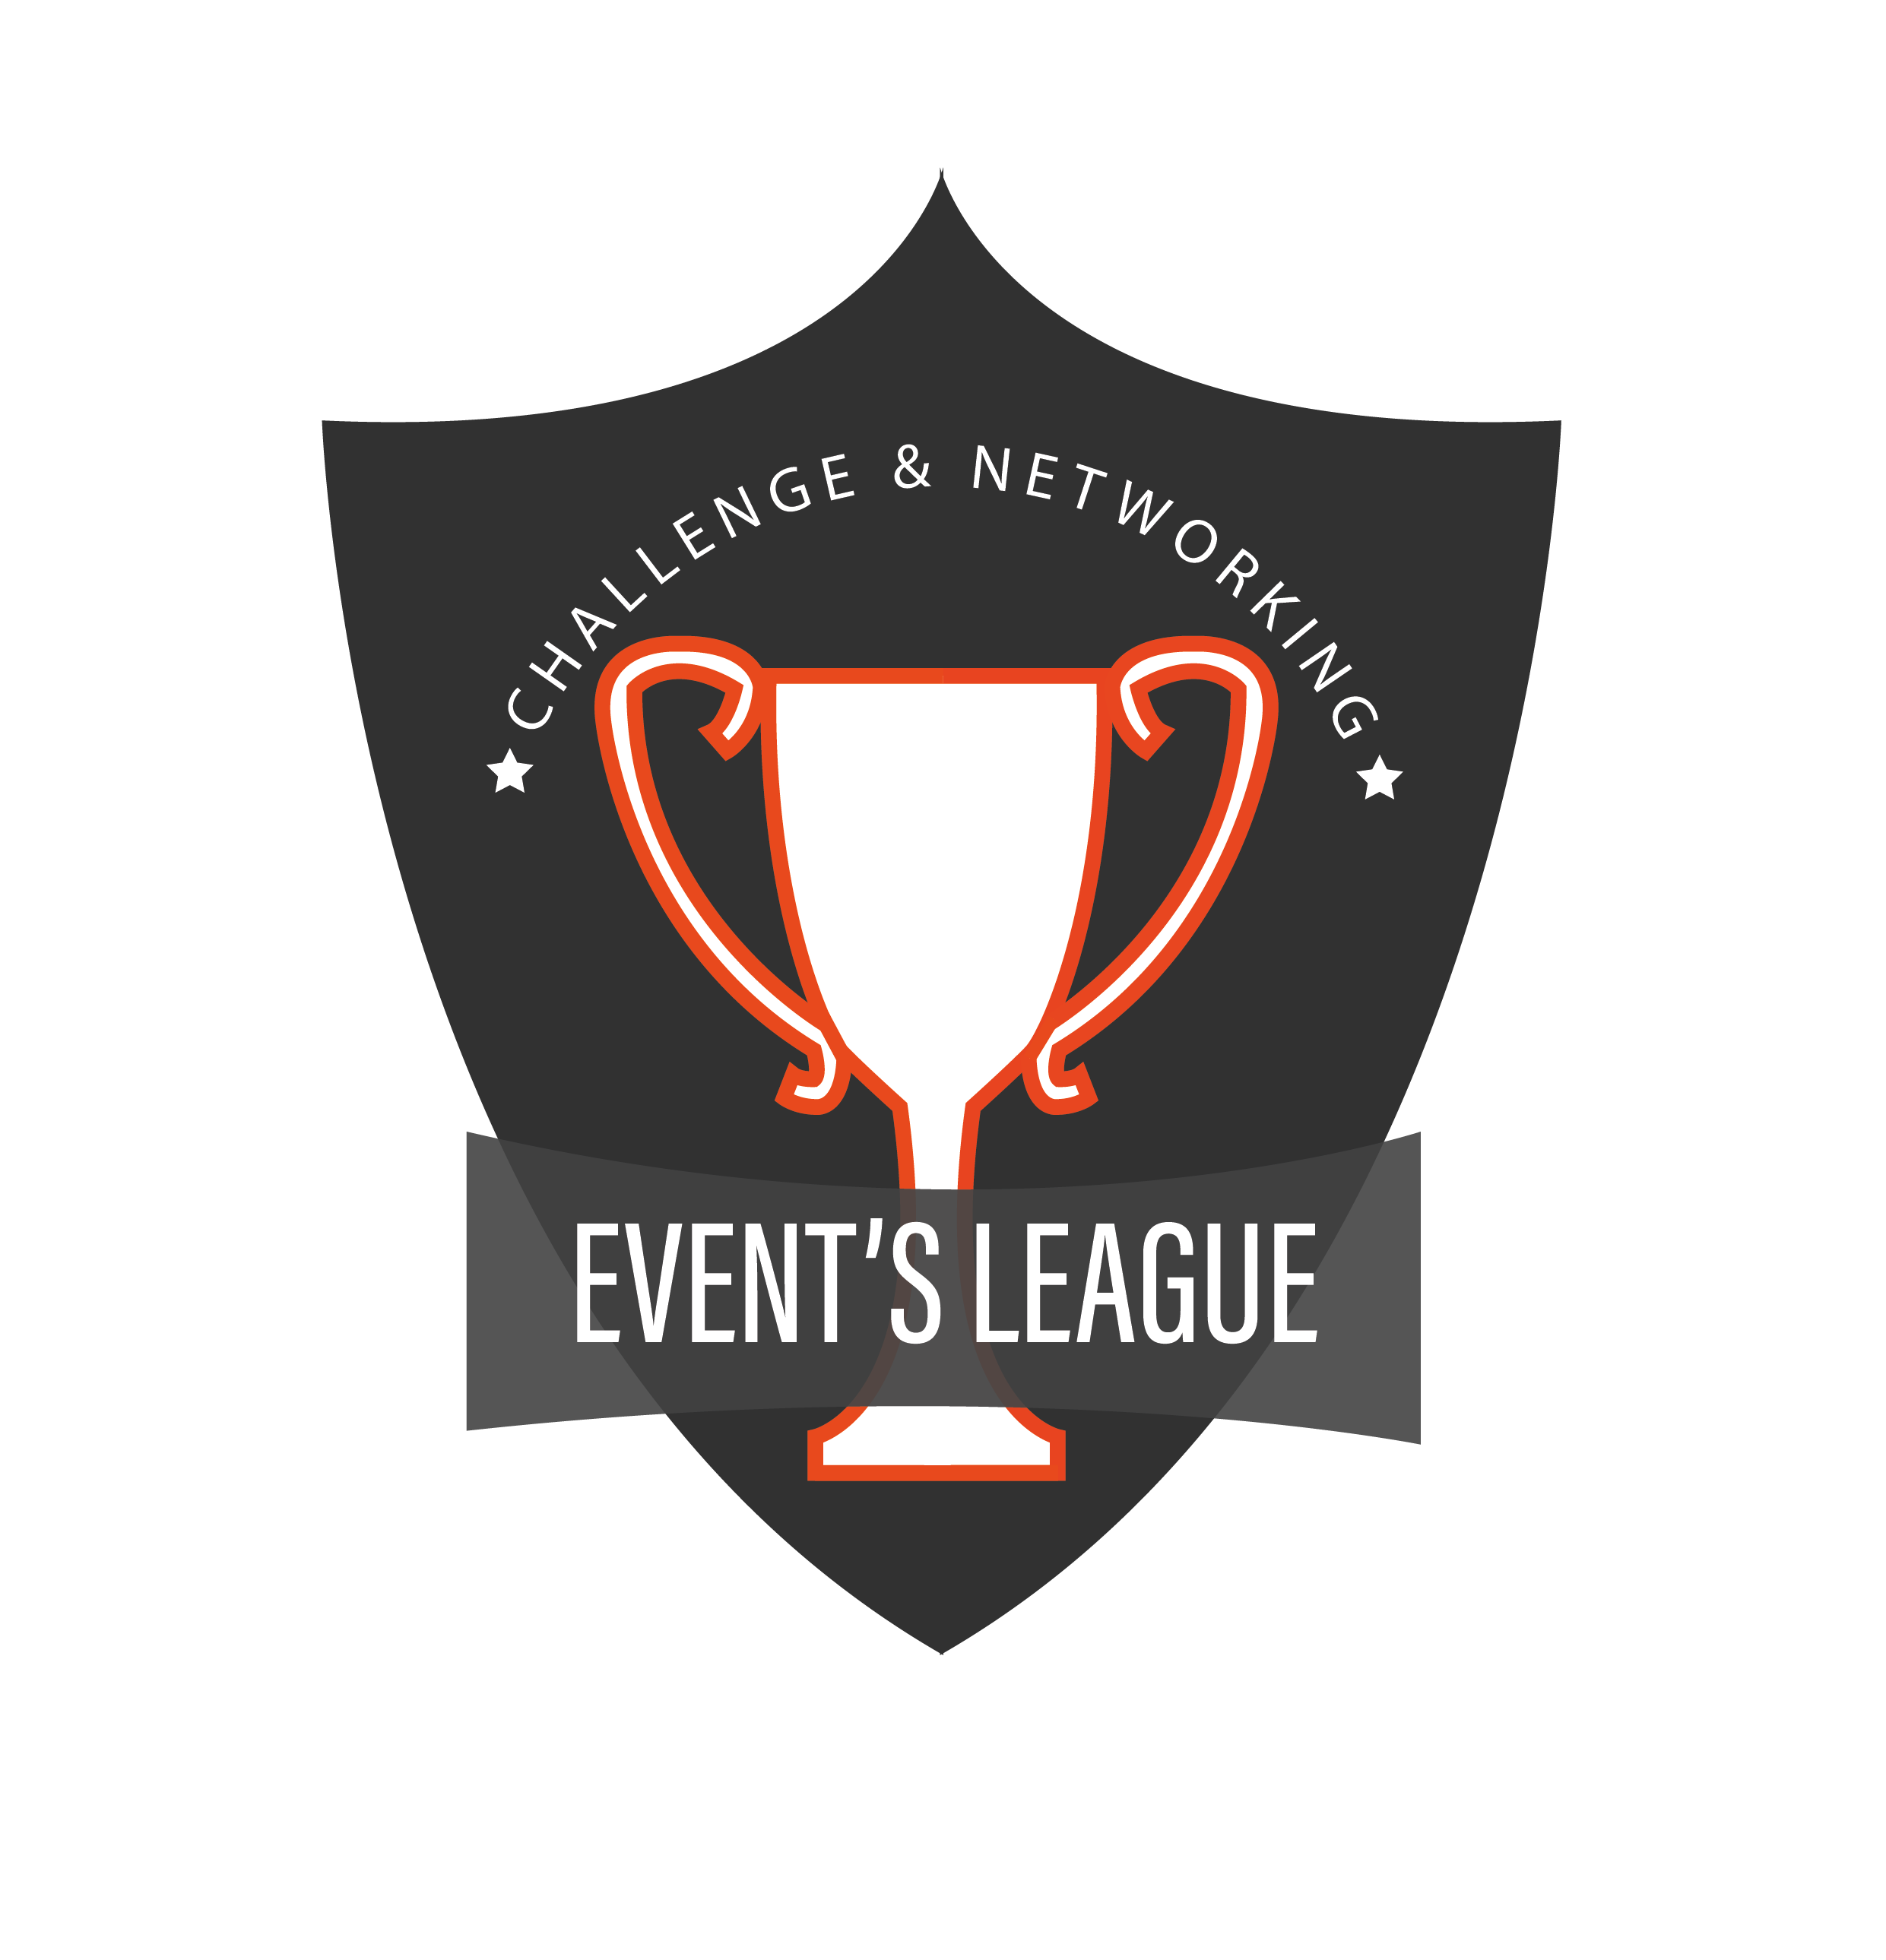 Event's League